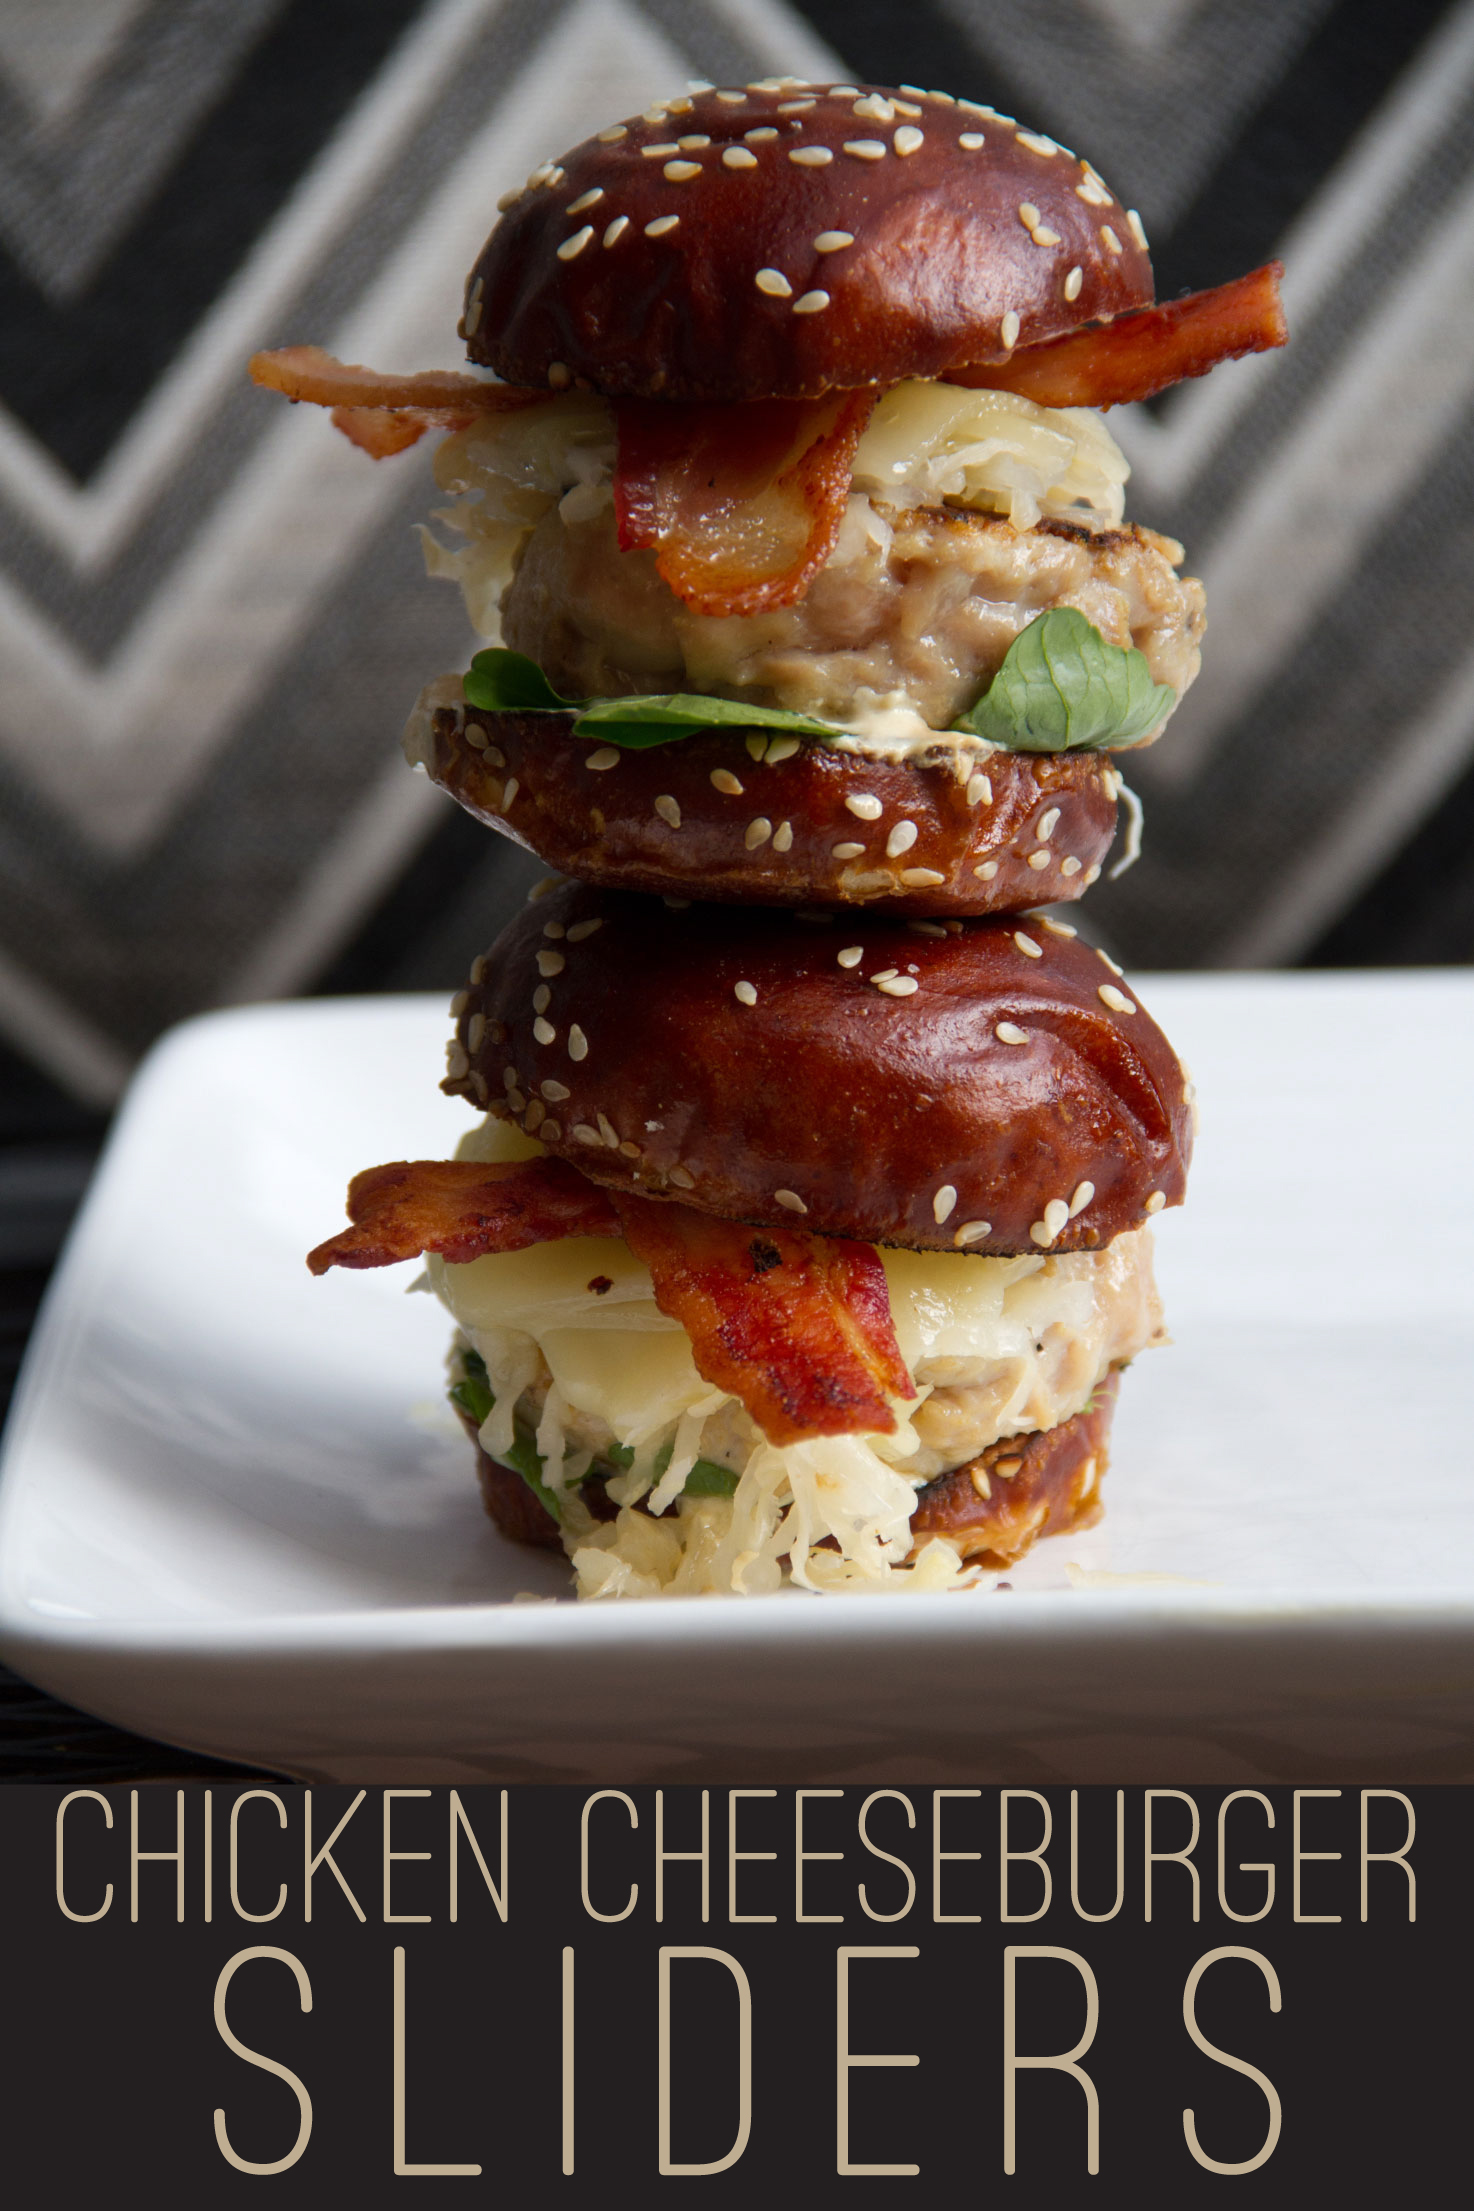 A Crazy Chicken Cheeseburger Collaboration